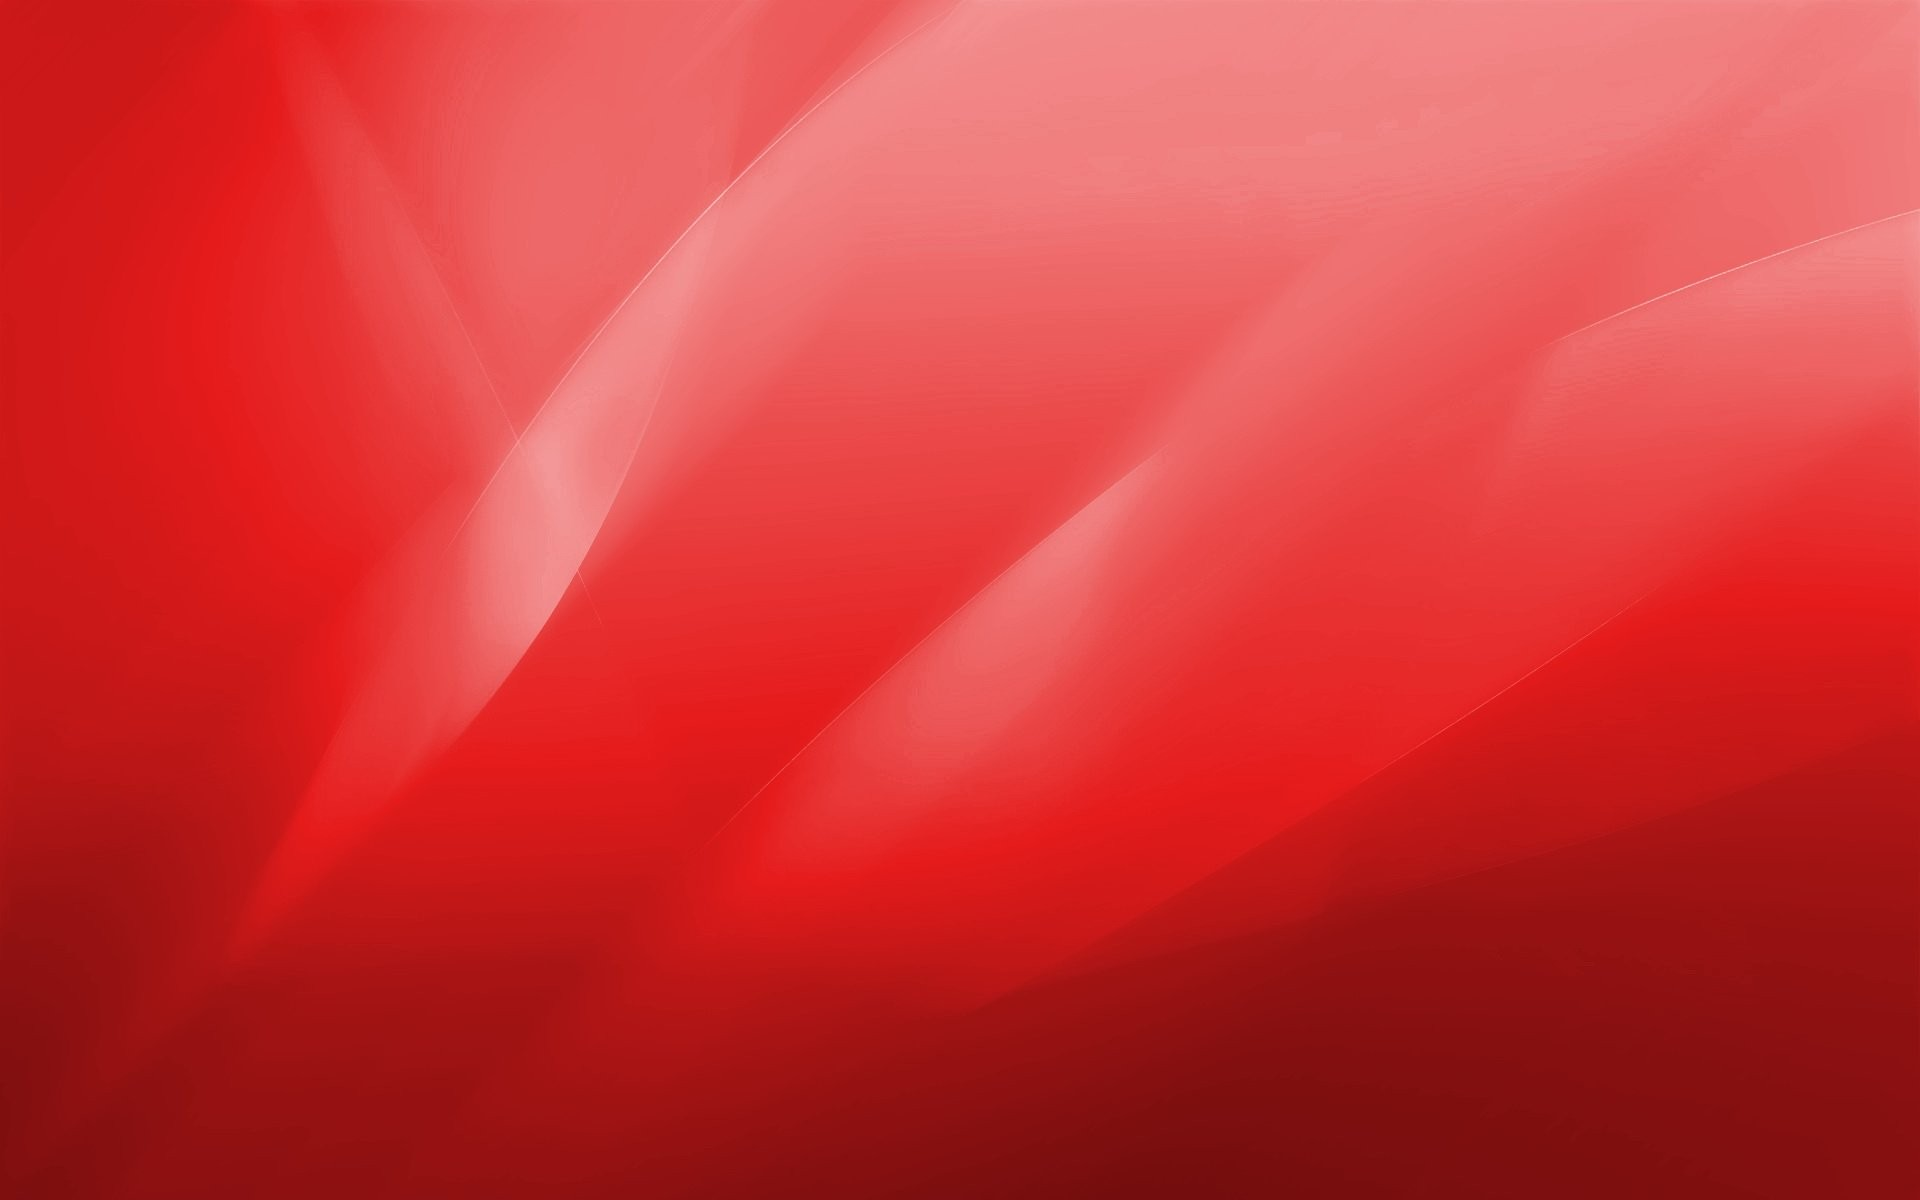 3d Hd Wallpapers For Laptop 1366x768 Light Red Background 183 ① Download Free Beautiful Hd